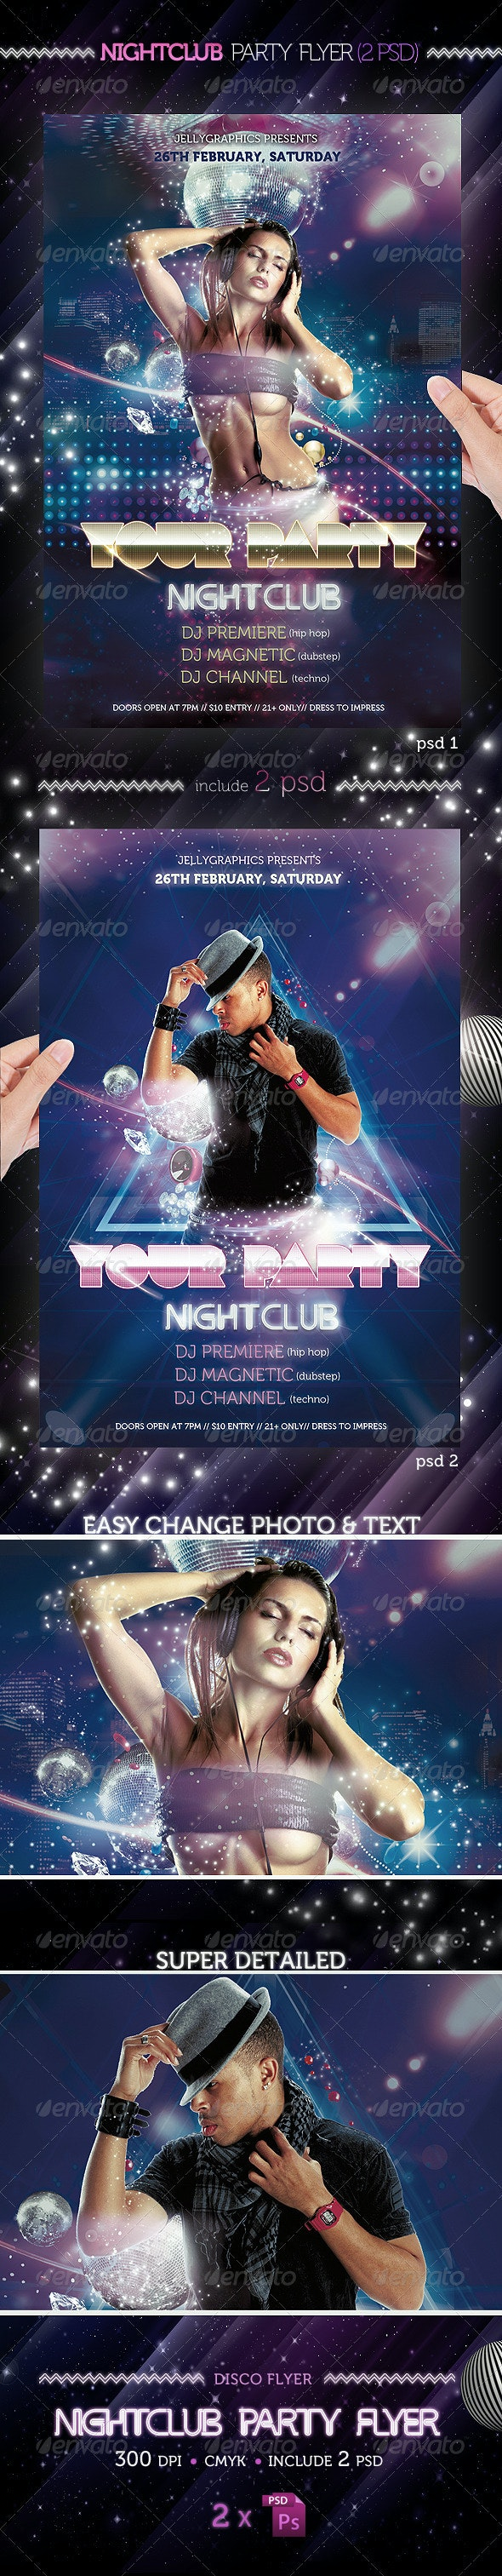 Nightclub Party Flyer Template - Clubs & Parties Events